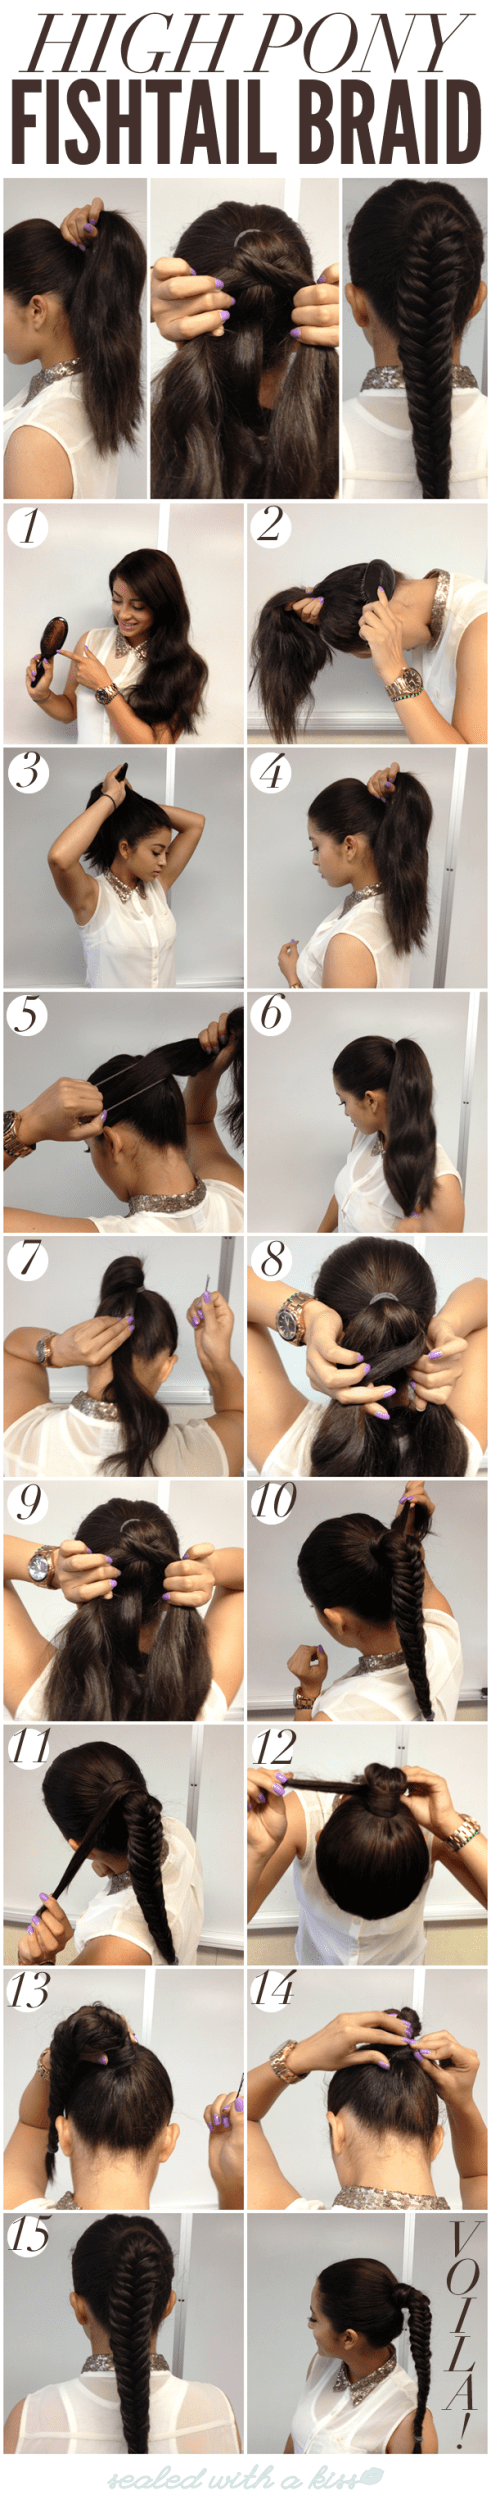 11 Best DIY Hairstyle Tutorials For Your Next Going Out